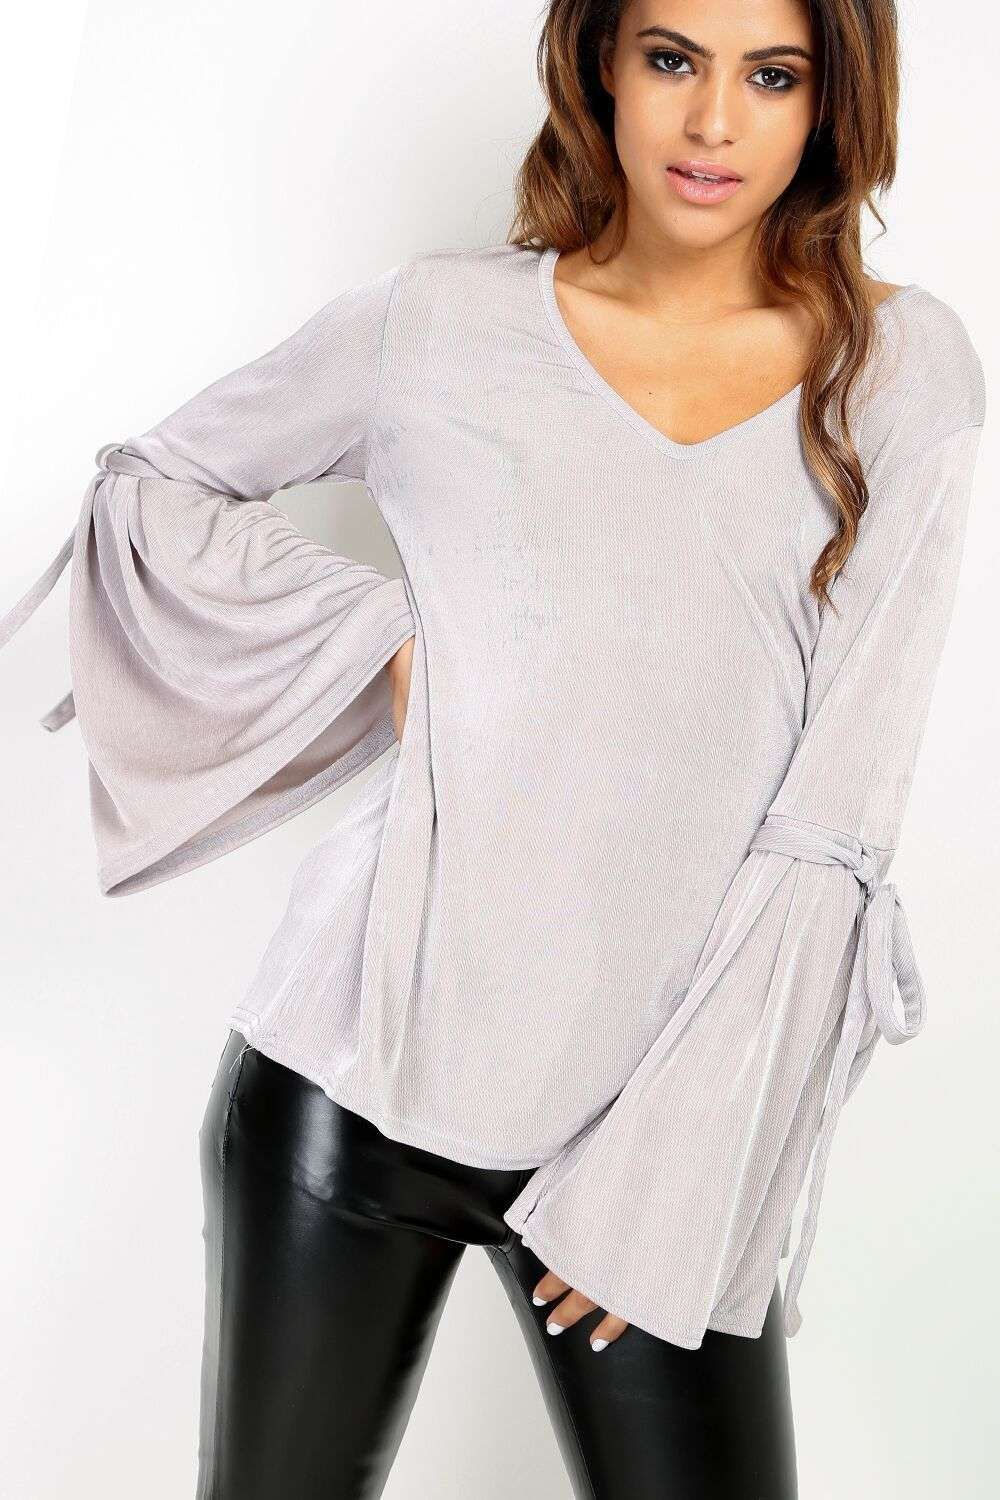 Kayah Knotted Bell Sleeve Top - bejealous-com